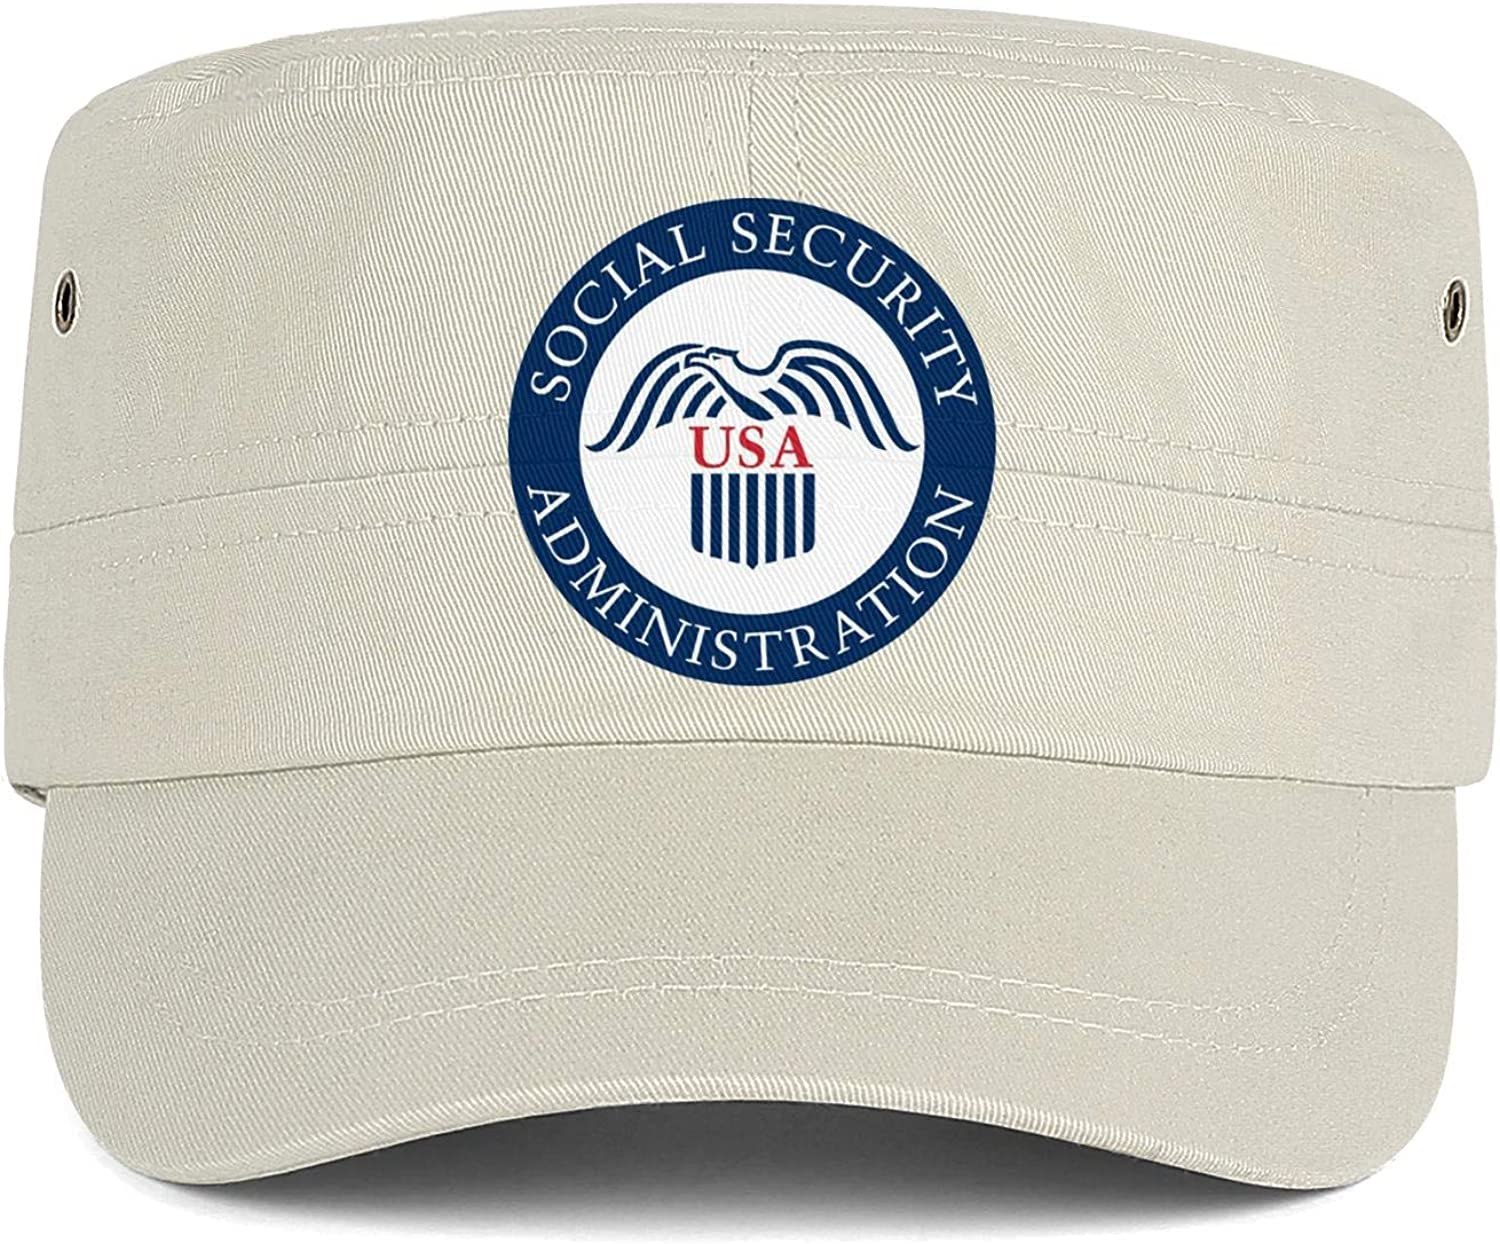 Social Security Administration Army Cap Cadet Corps Hat Military Flat Top Adjustable Baseball Cap Vintage